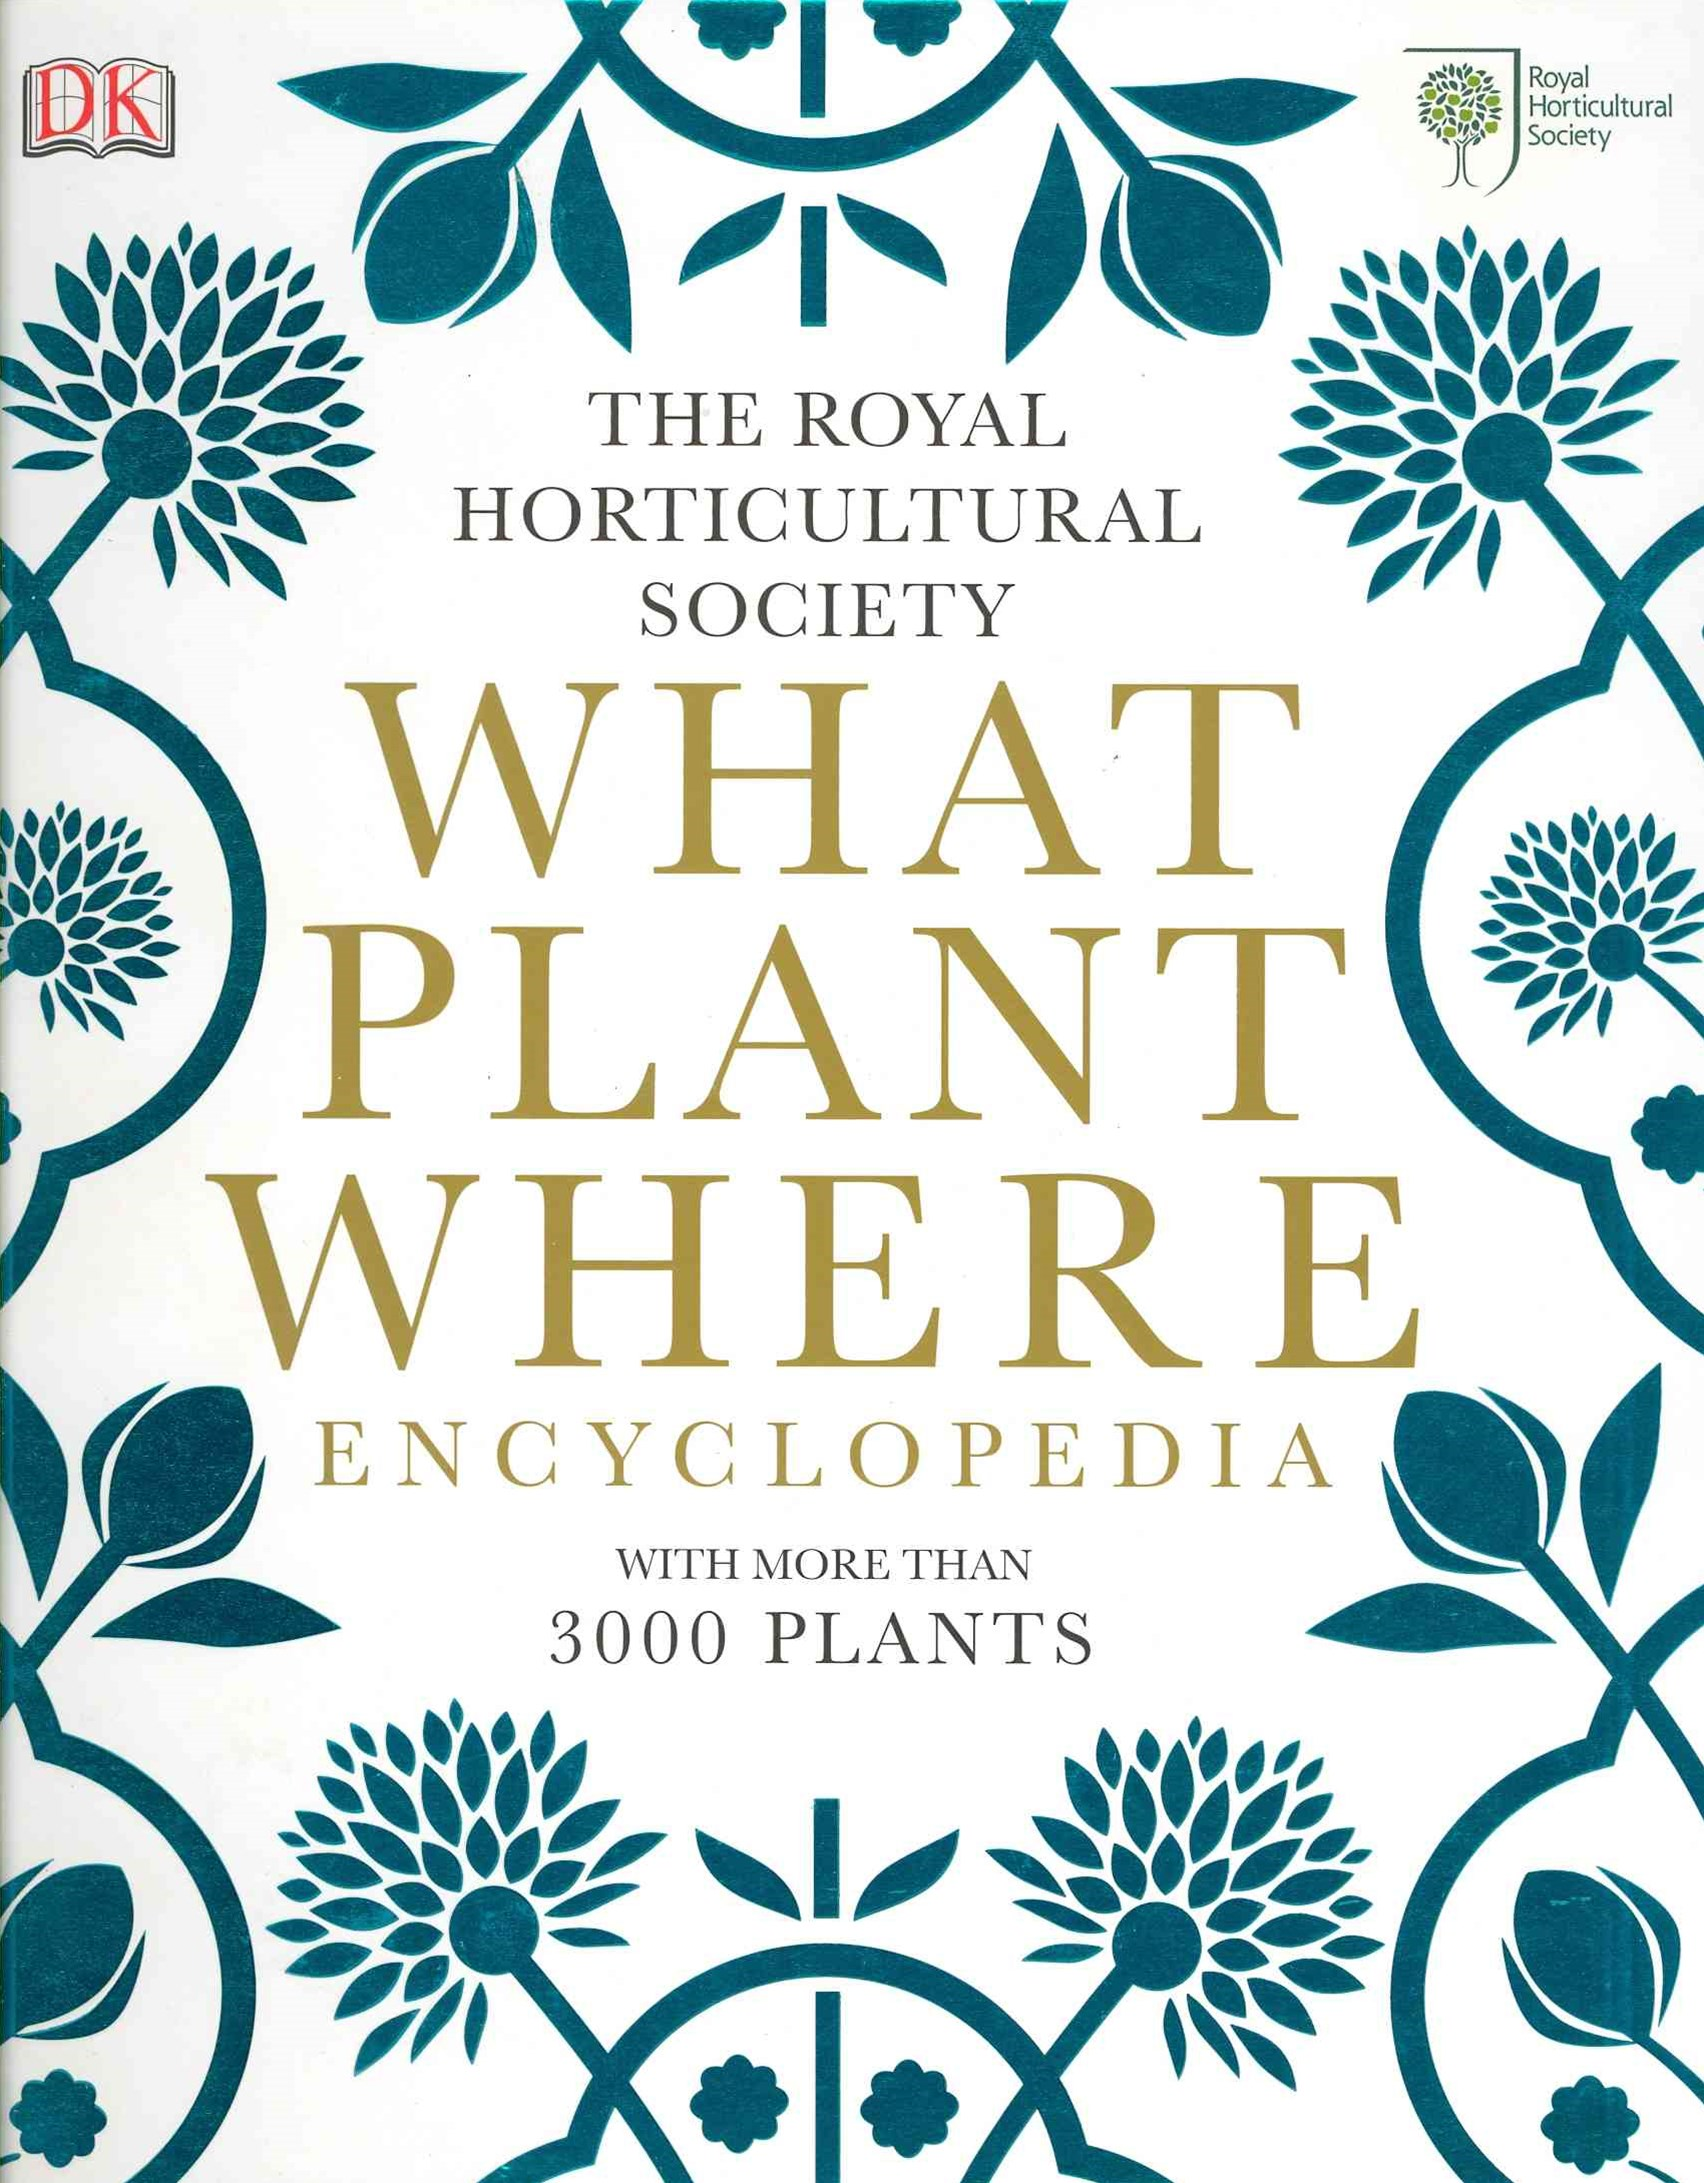 Royal Horticultural Society: What Plant Where Encyclopedia,The